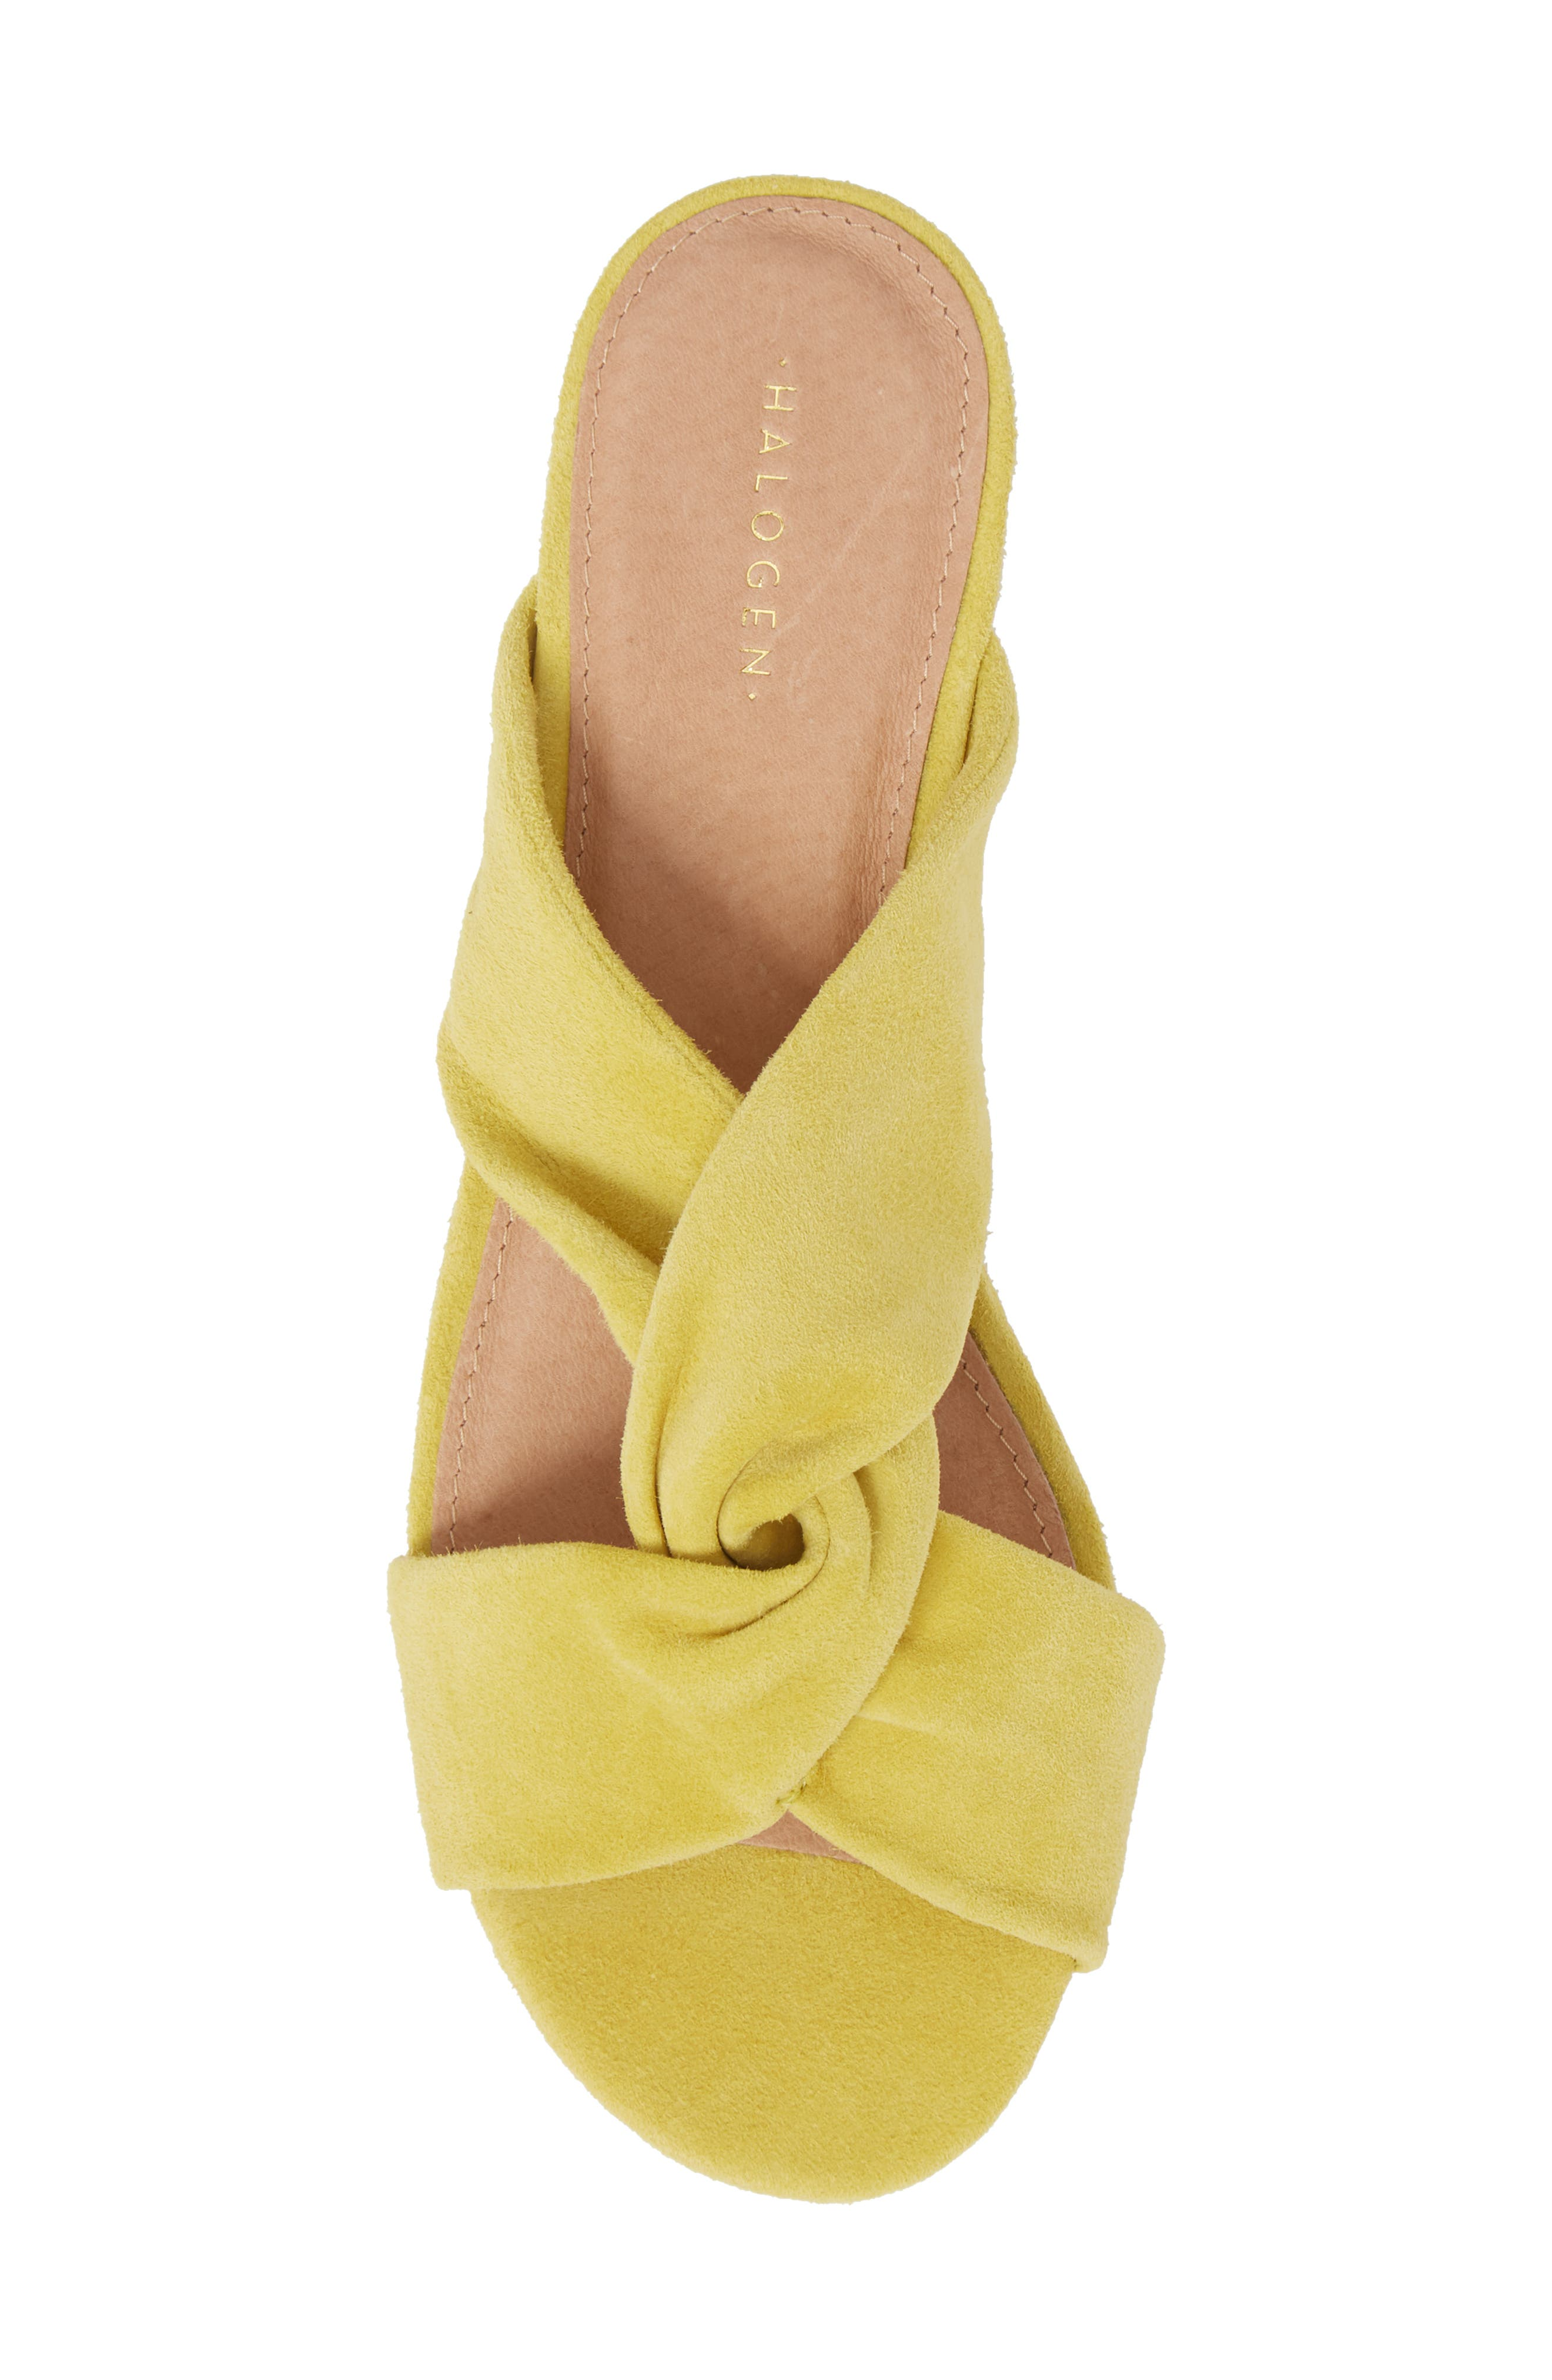 Andre Slide Sandal,                             Alternate thumbnail 5, color,                             Mustard Suede